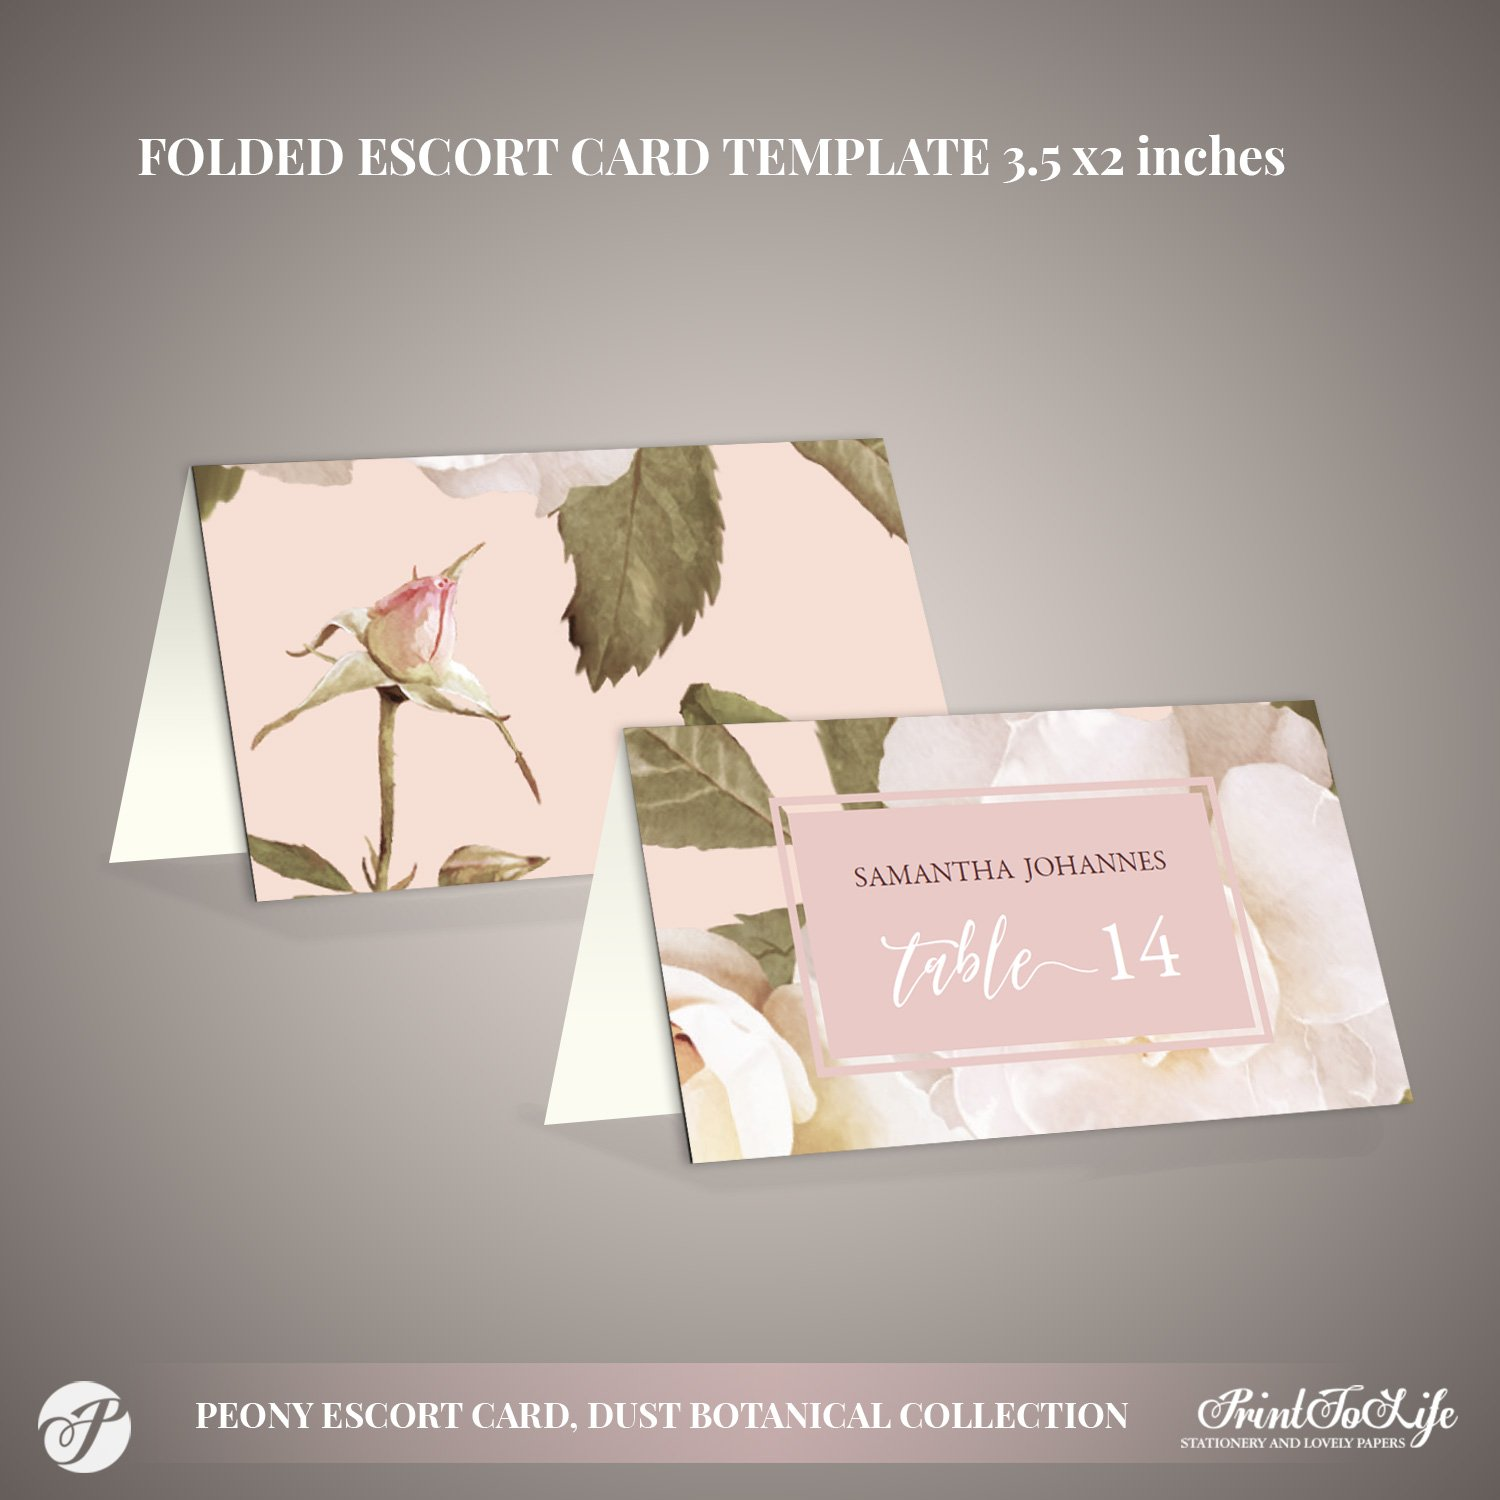 Peony Escort Cards Template by Printolife